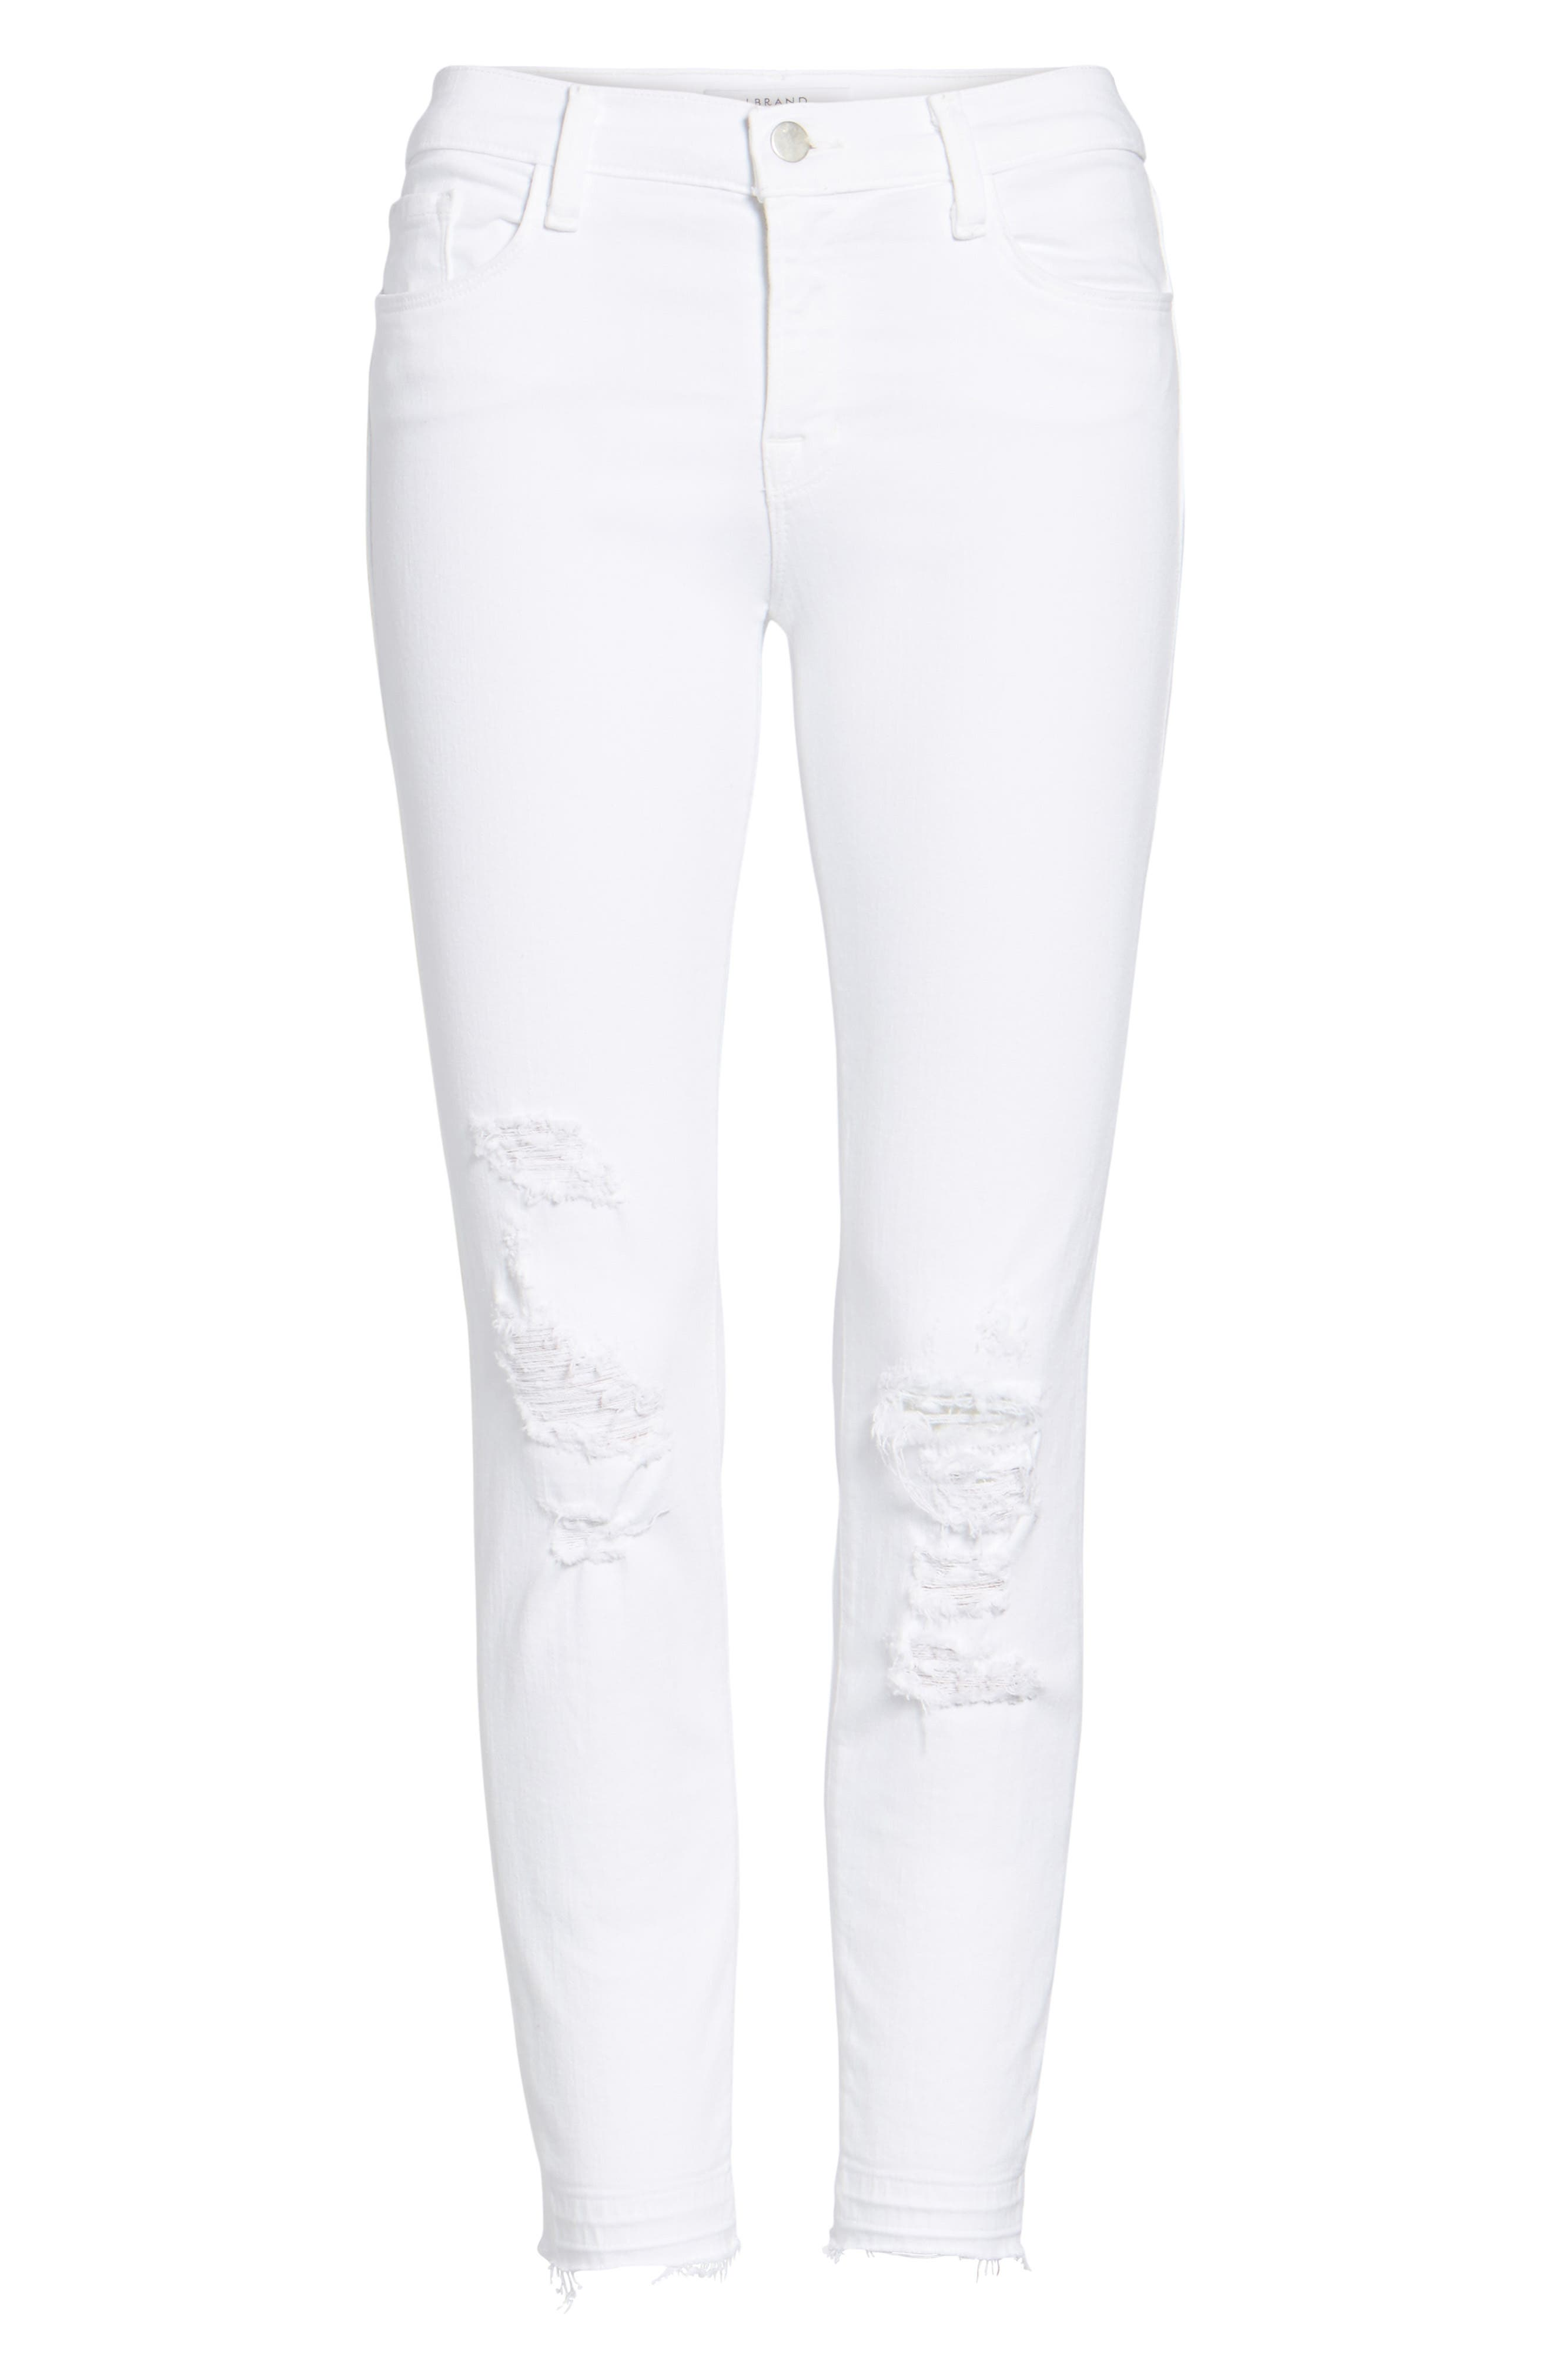 J BRAND, 9326 Low Rise Crop Skinny Jeans, Alternate thumbnail 6, color, DEMENTED WHITE DESTRUCTED